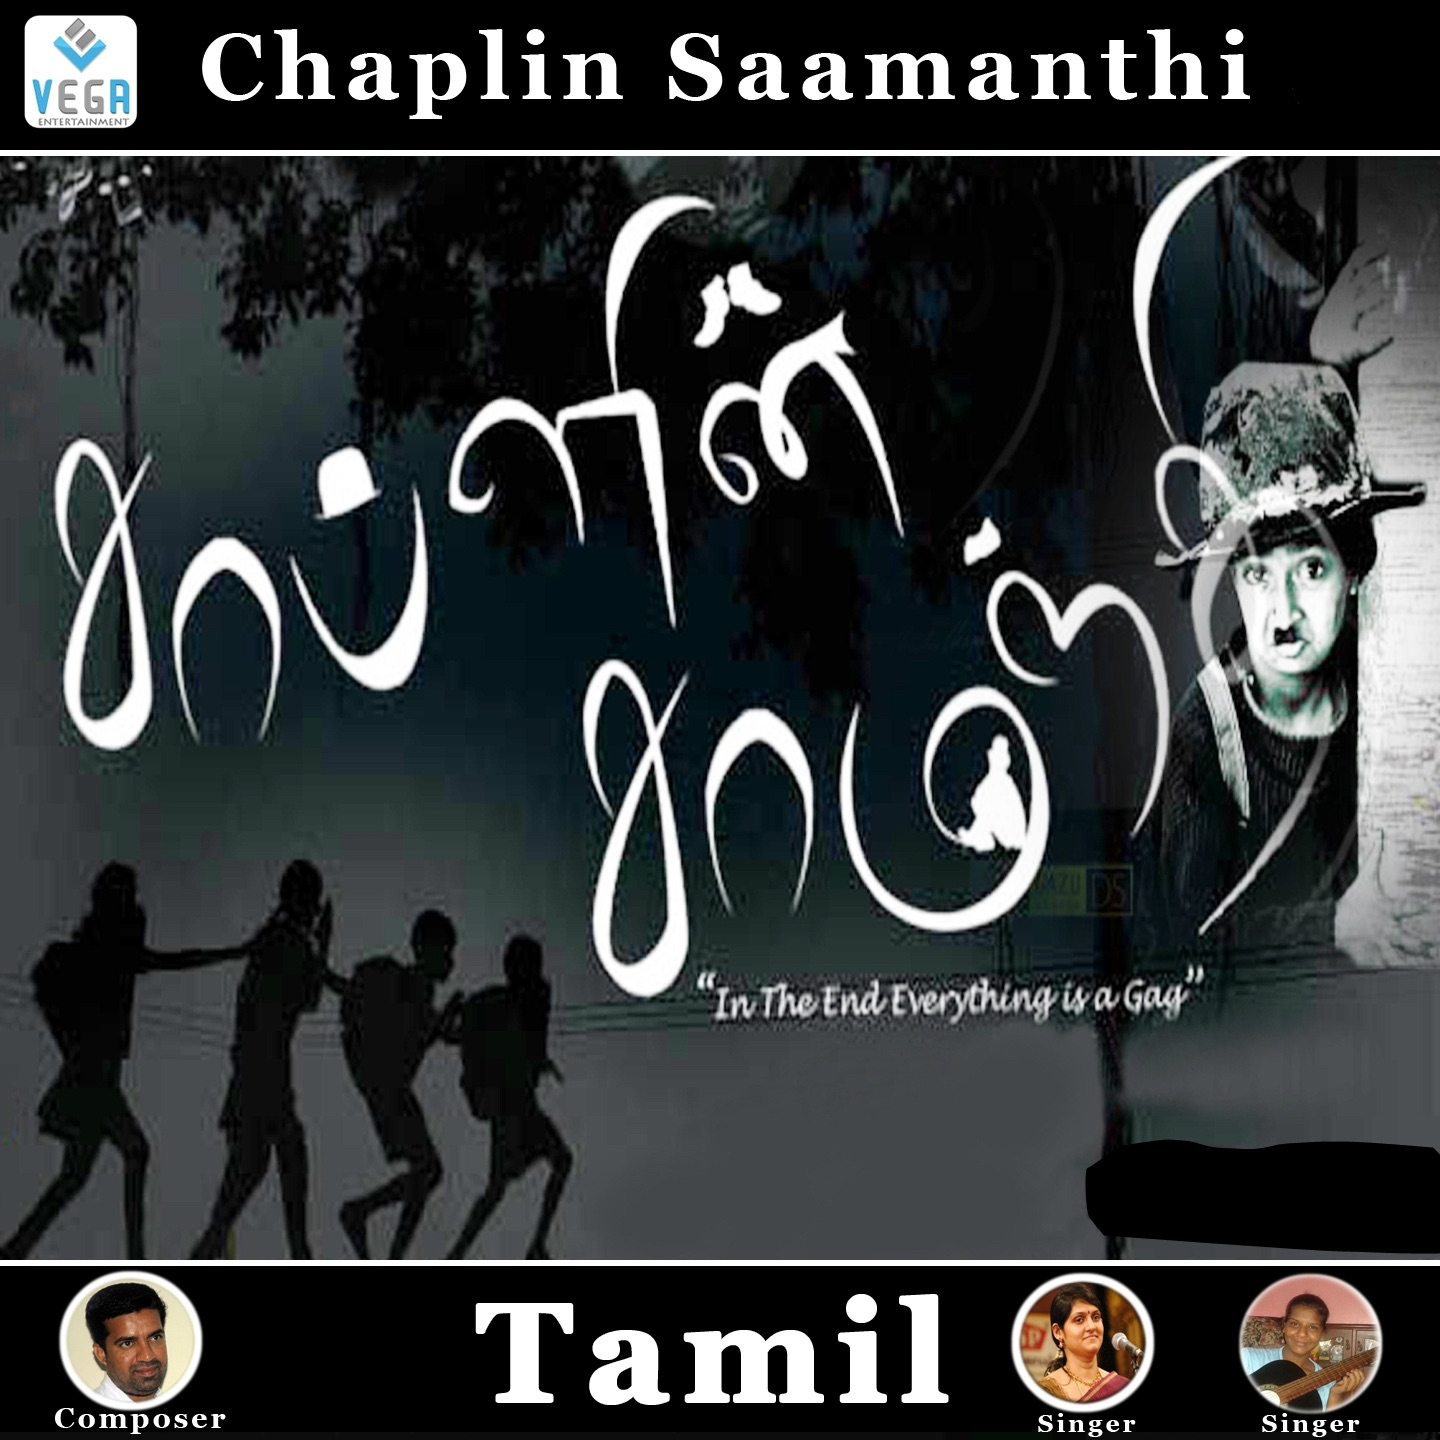 Chaplin Samanthi (Original Motion Picture Soundtrack) - EP